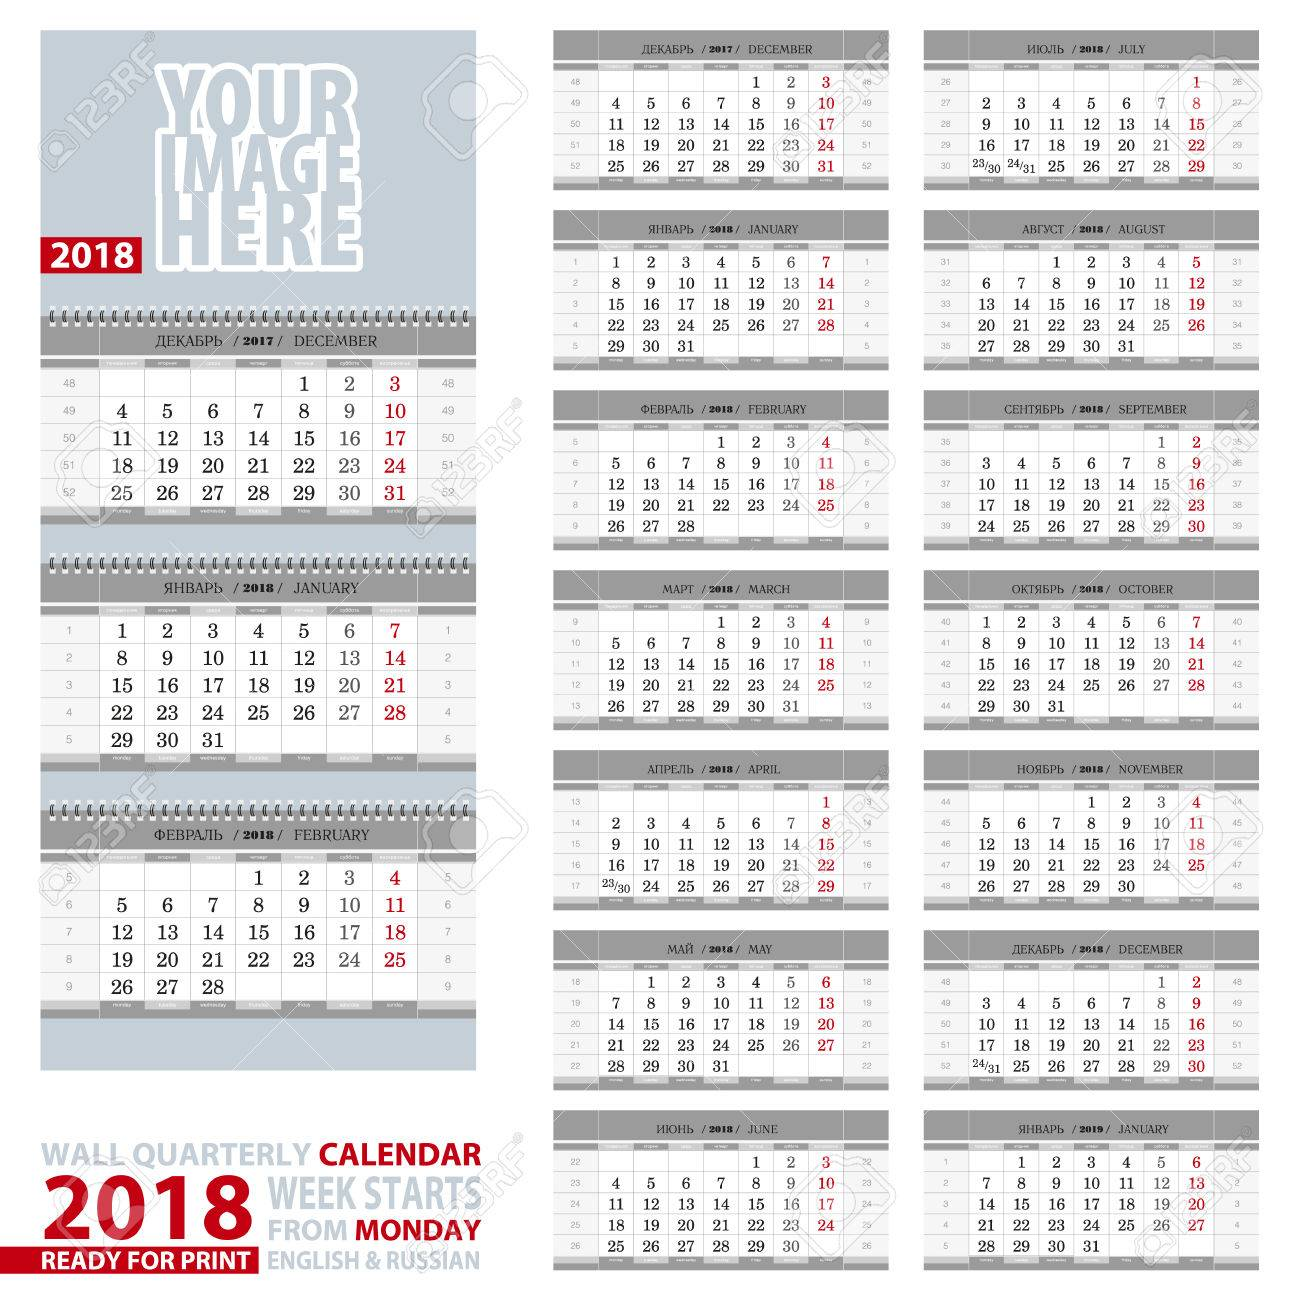 2018 calendar design in gray color wall quarterly calendar 2018 english and russian